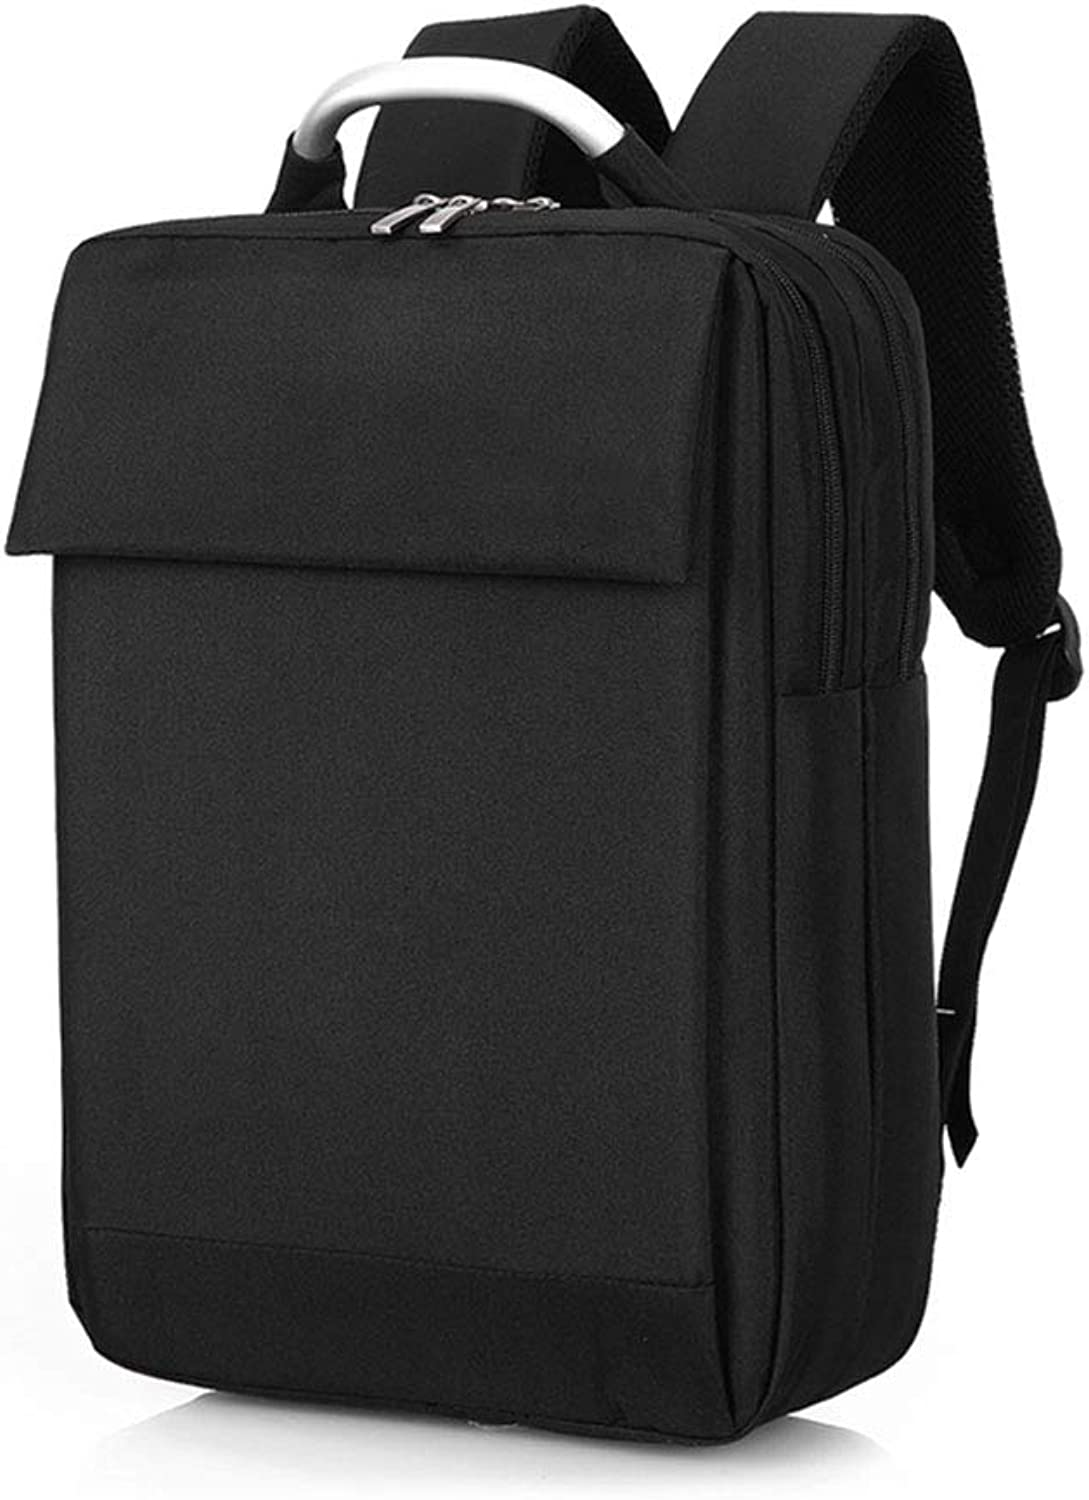 DYYTR School Bag, Computer Backpack Backpack, Youth Fashion Travel Bag Waterproof And Breathable(Black)